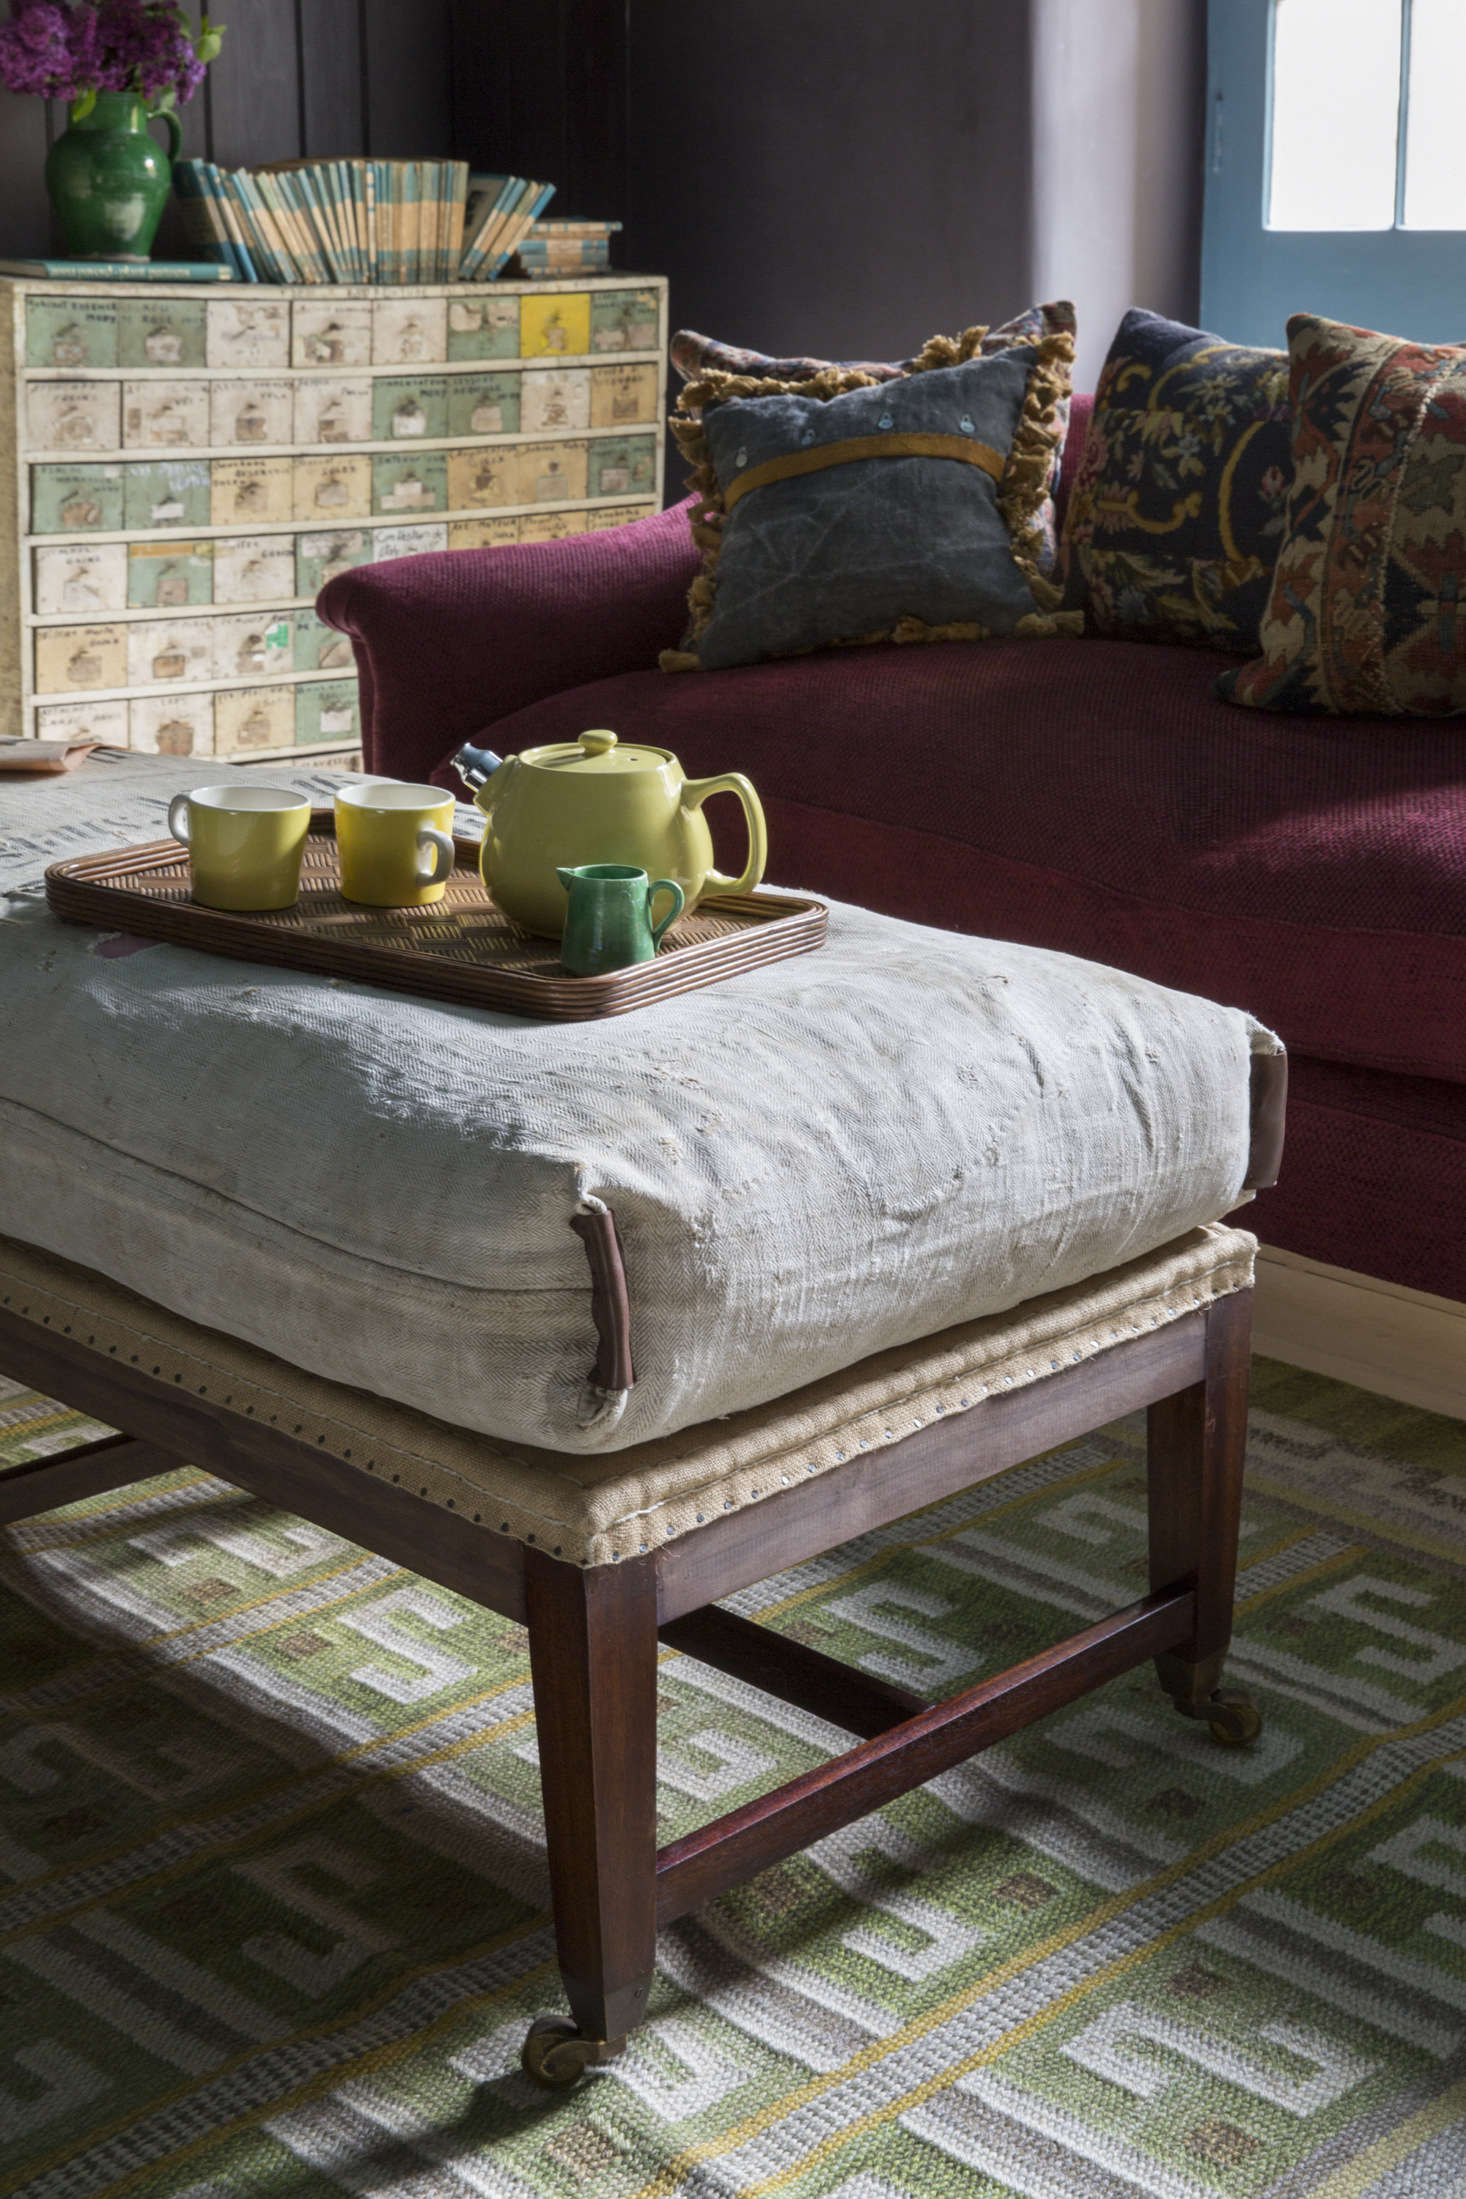 A Howe bestseller, the deconstructed Gainsborough Stool, serves as a seat, footrest, and coffee table. Howe says the set of painted drawers next to the fireplace came out of a Vespa shop in France with labels intact. They&#8